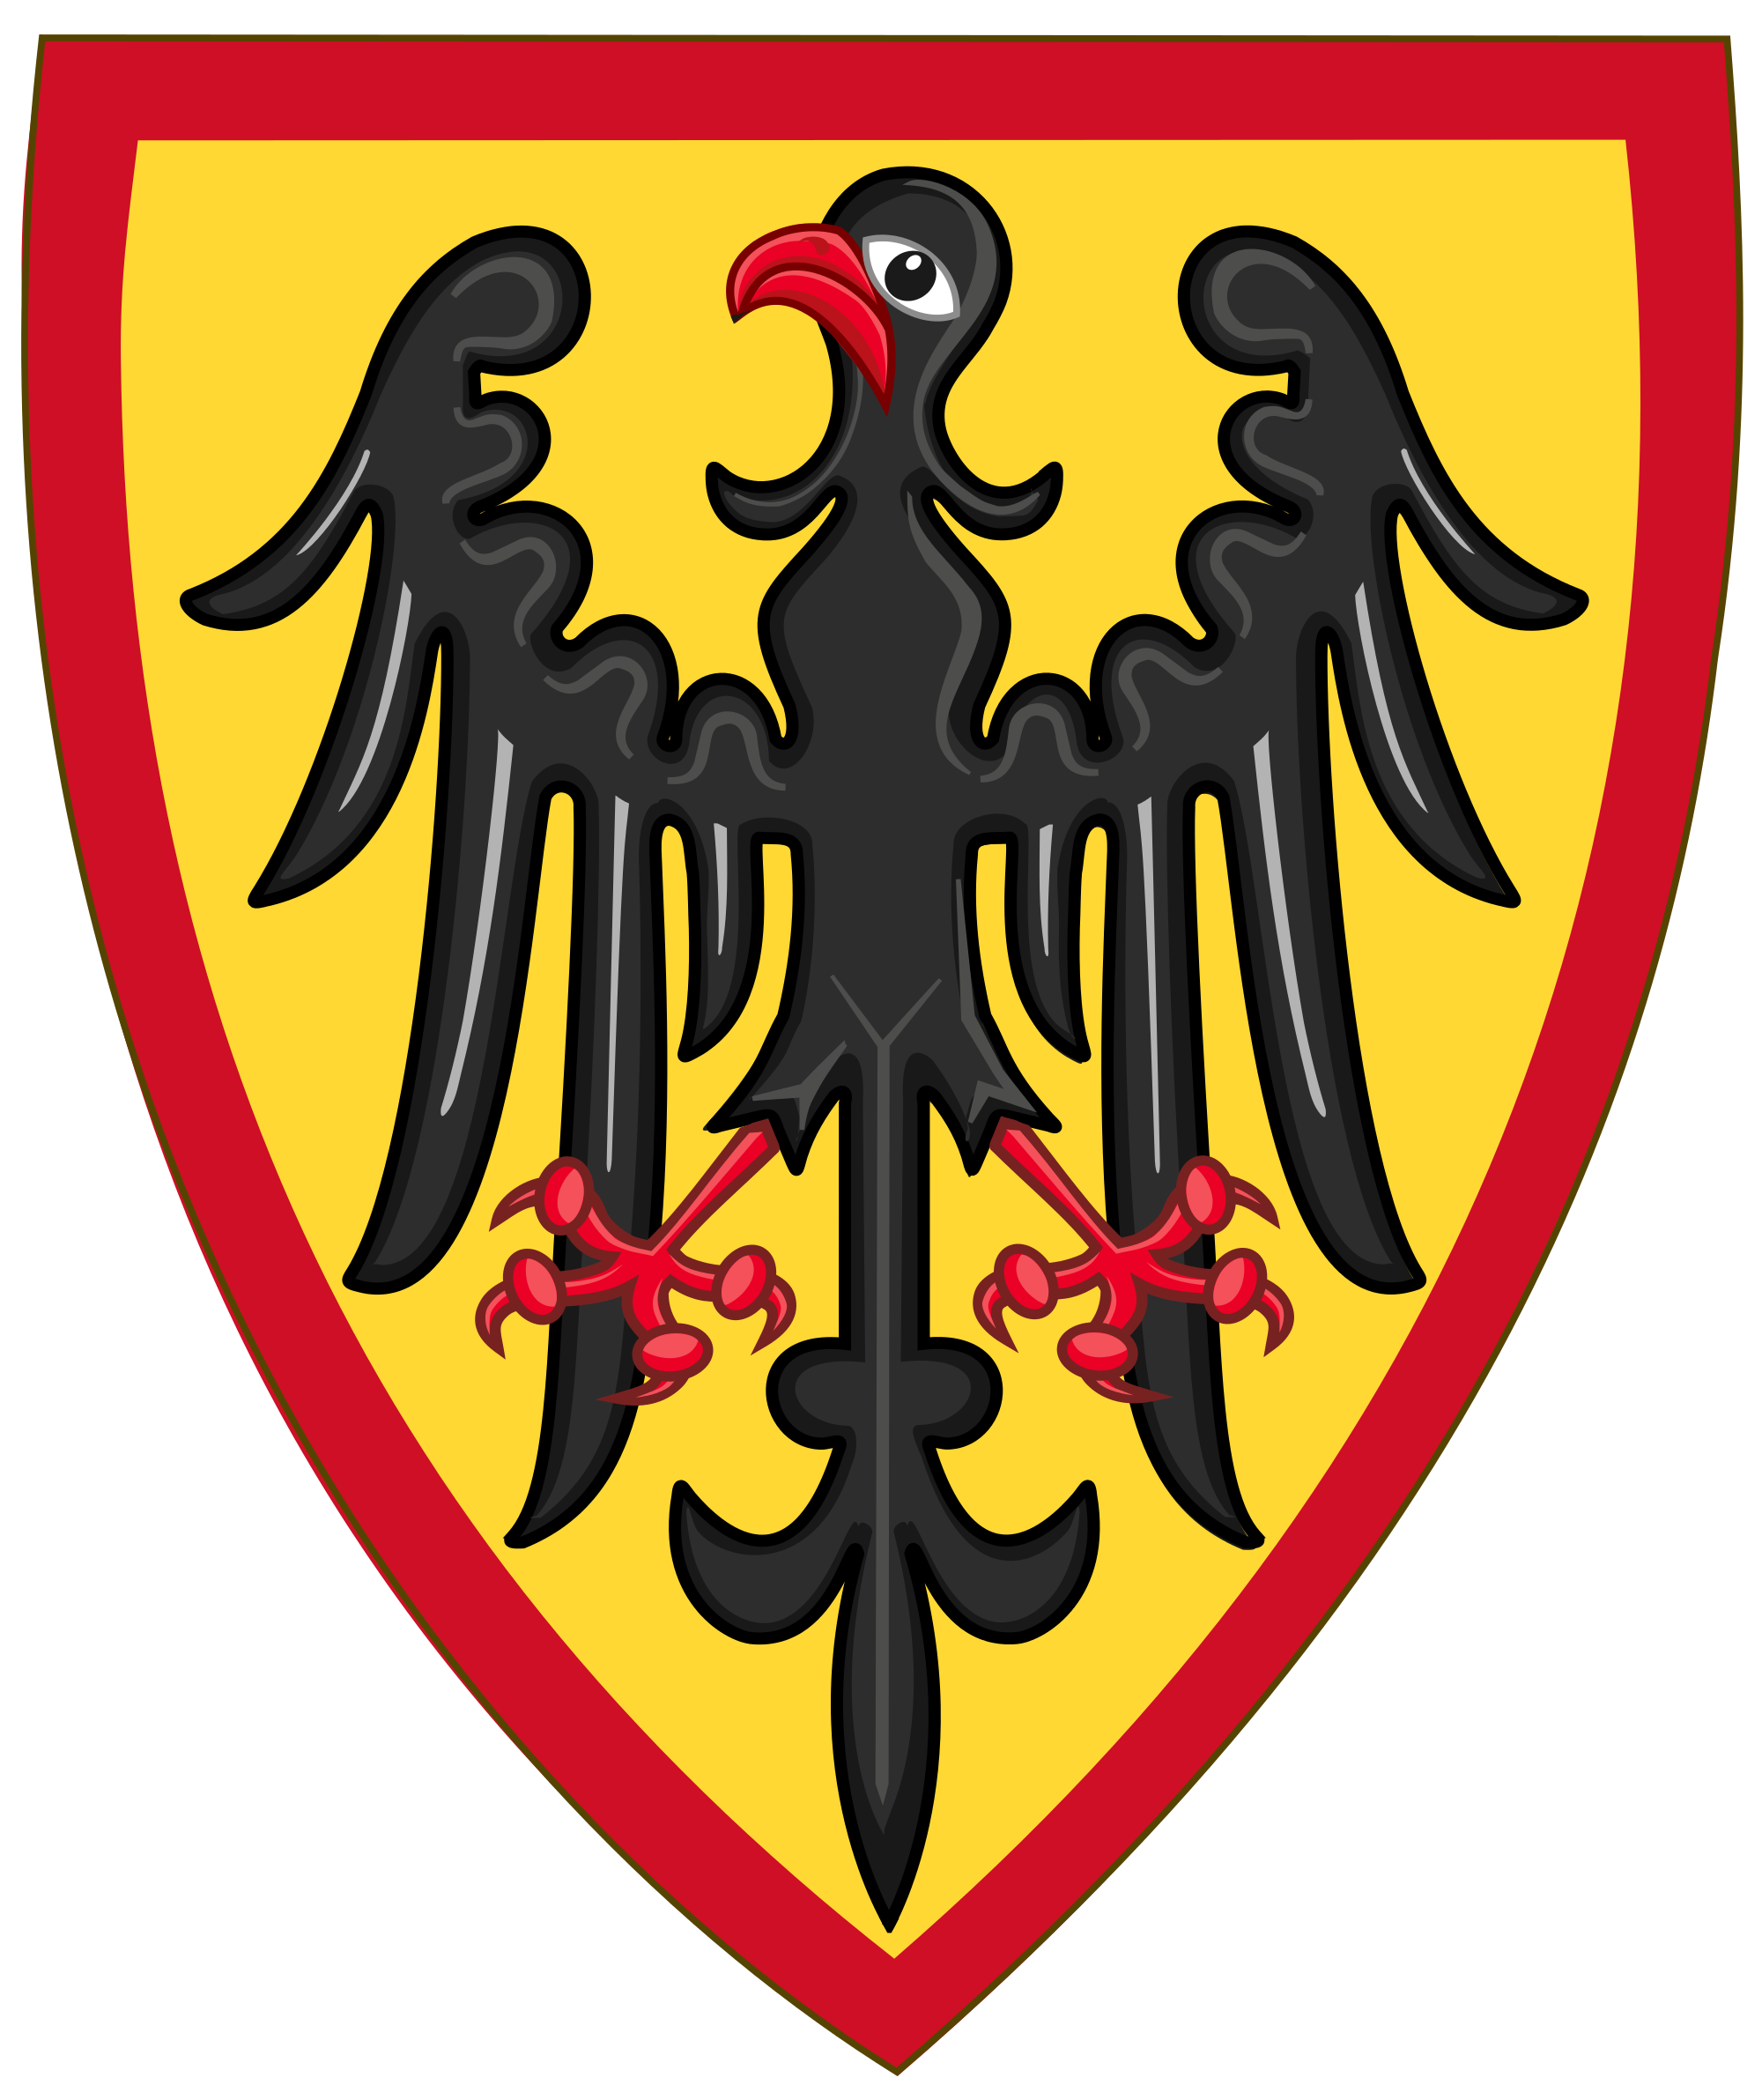 Clipart shield shield roman. Coat of arms germany